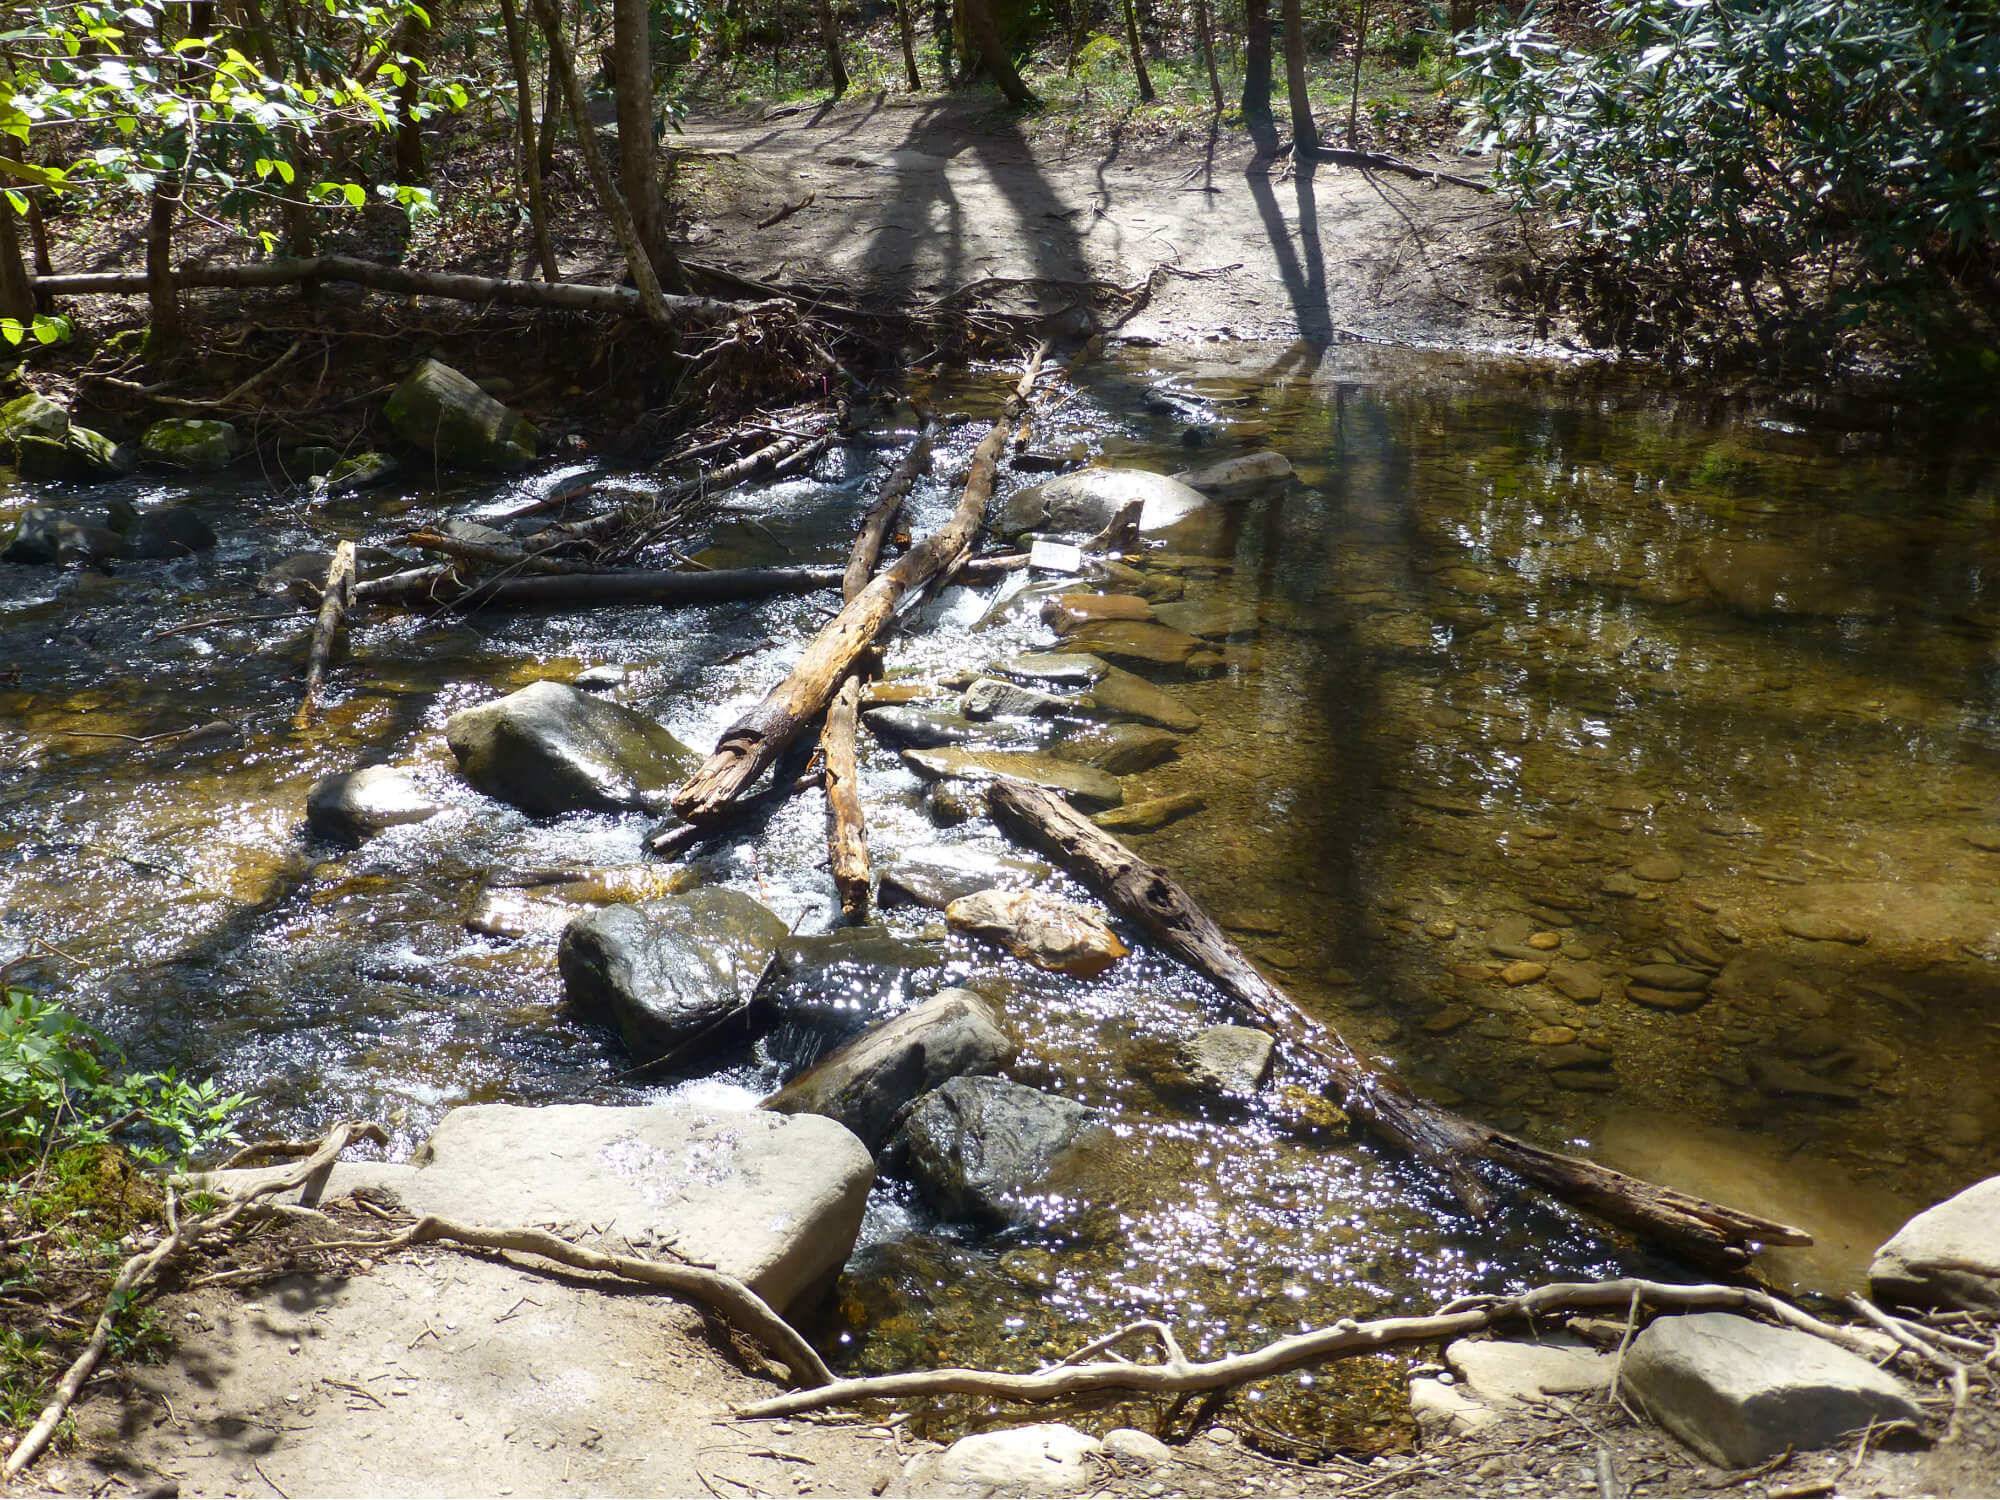 Stream with rocks and logs creating a place to cross